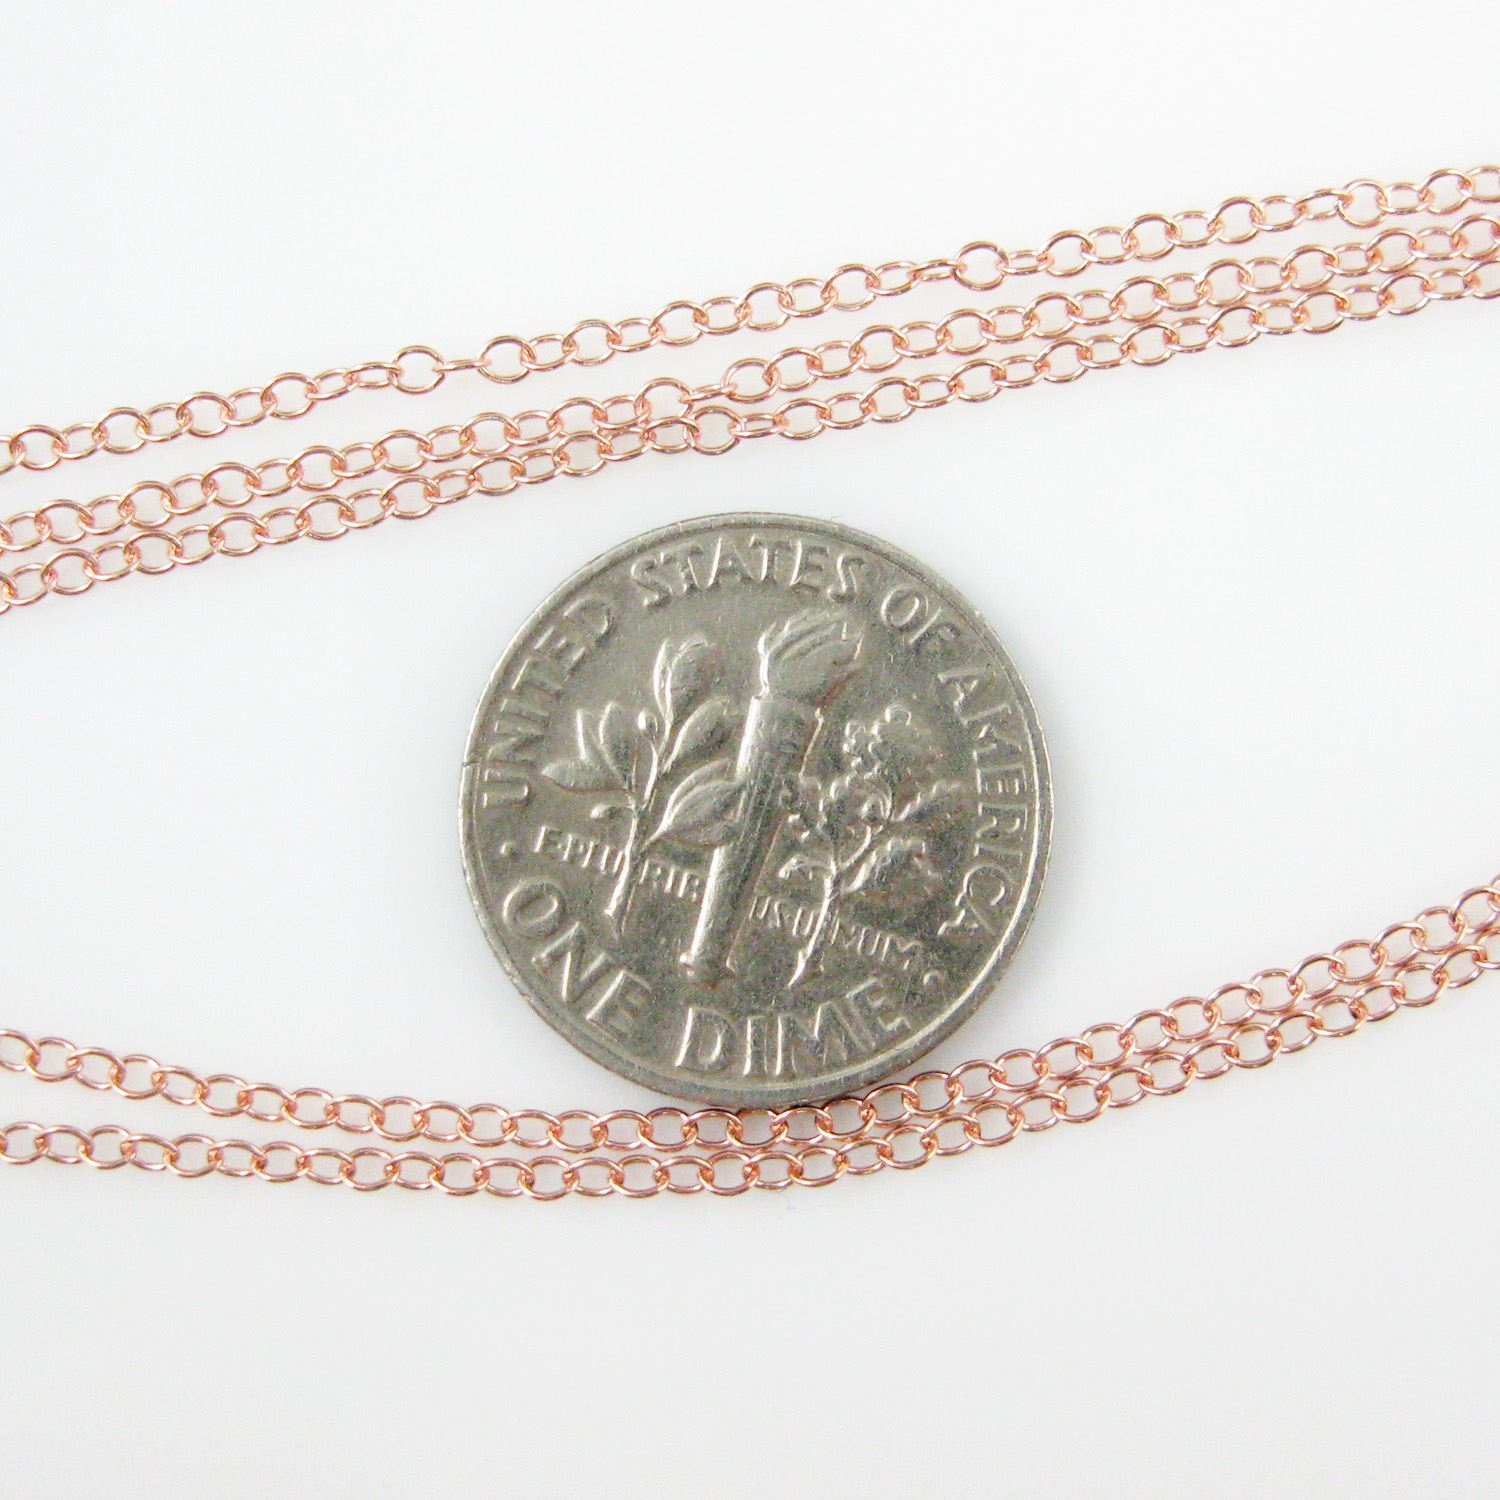 Rose Gold Plated over Sterling Silver Chain, 925 Sterling Silver Bulk Chain - 2 by 1.5mm Cable Oval (sold per foot)